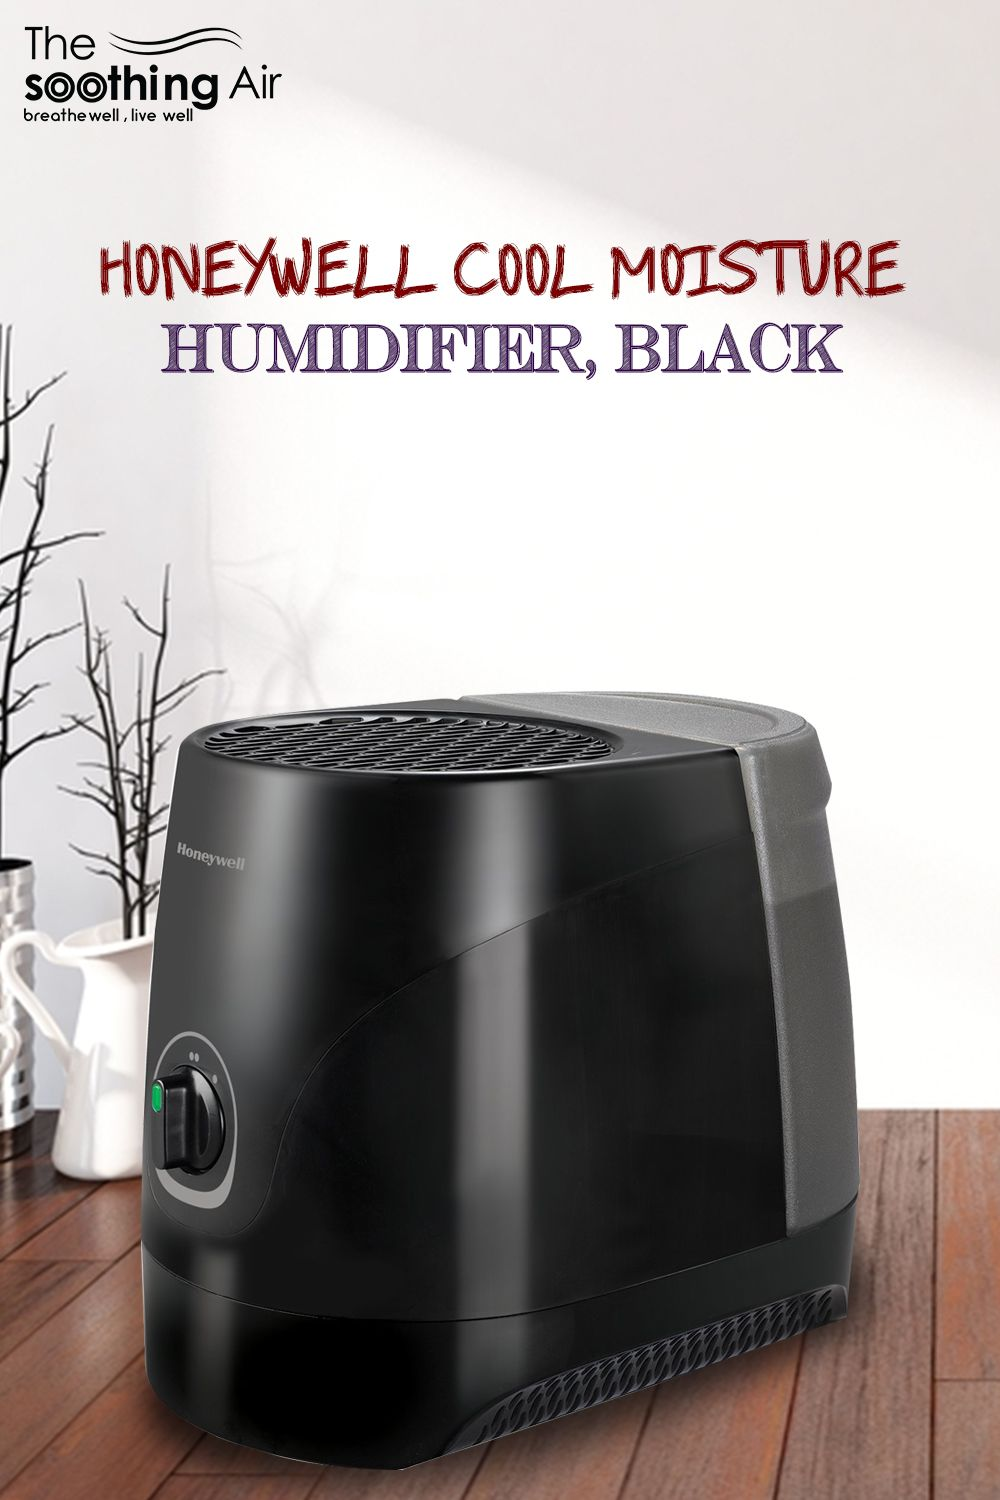 Top 10 Evaporative Humidifiers (Feb. 2020) Reviews and